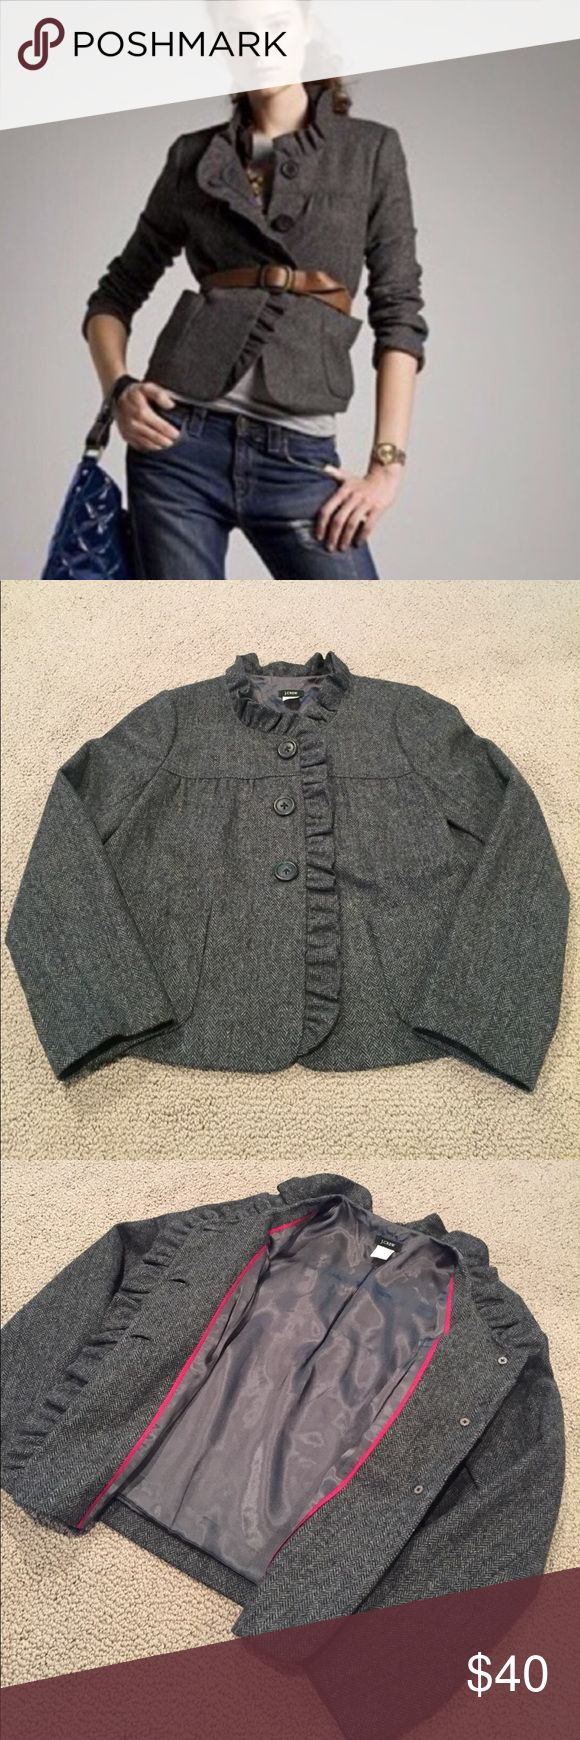 J. Crew Fiona Ruffle Harringbone Wool Jacket The cutest harringbone, 100% wool coat you ever did see! Coat for sale is gray and black version. Lined with ruffle detail around the neck and front. Button front along with pockets above the hem. Classic and so cute. Like new! J. Crew Jackets & Coats